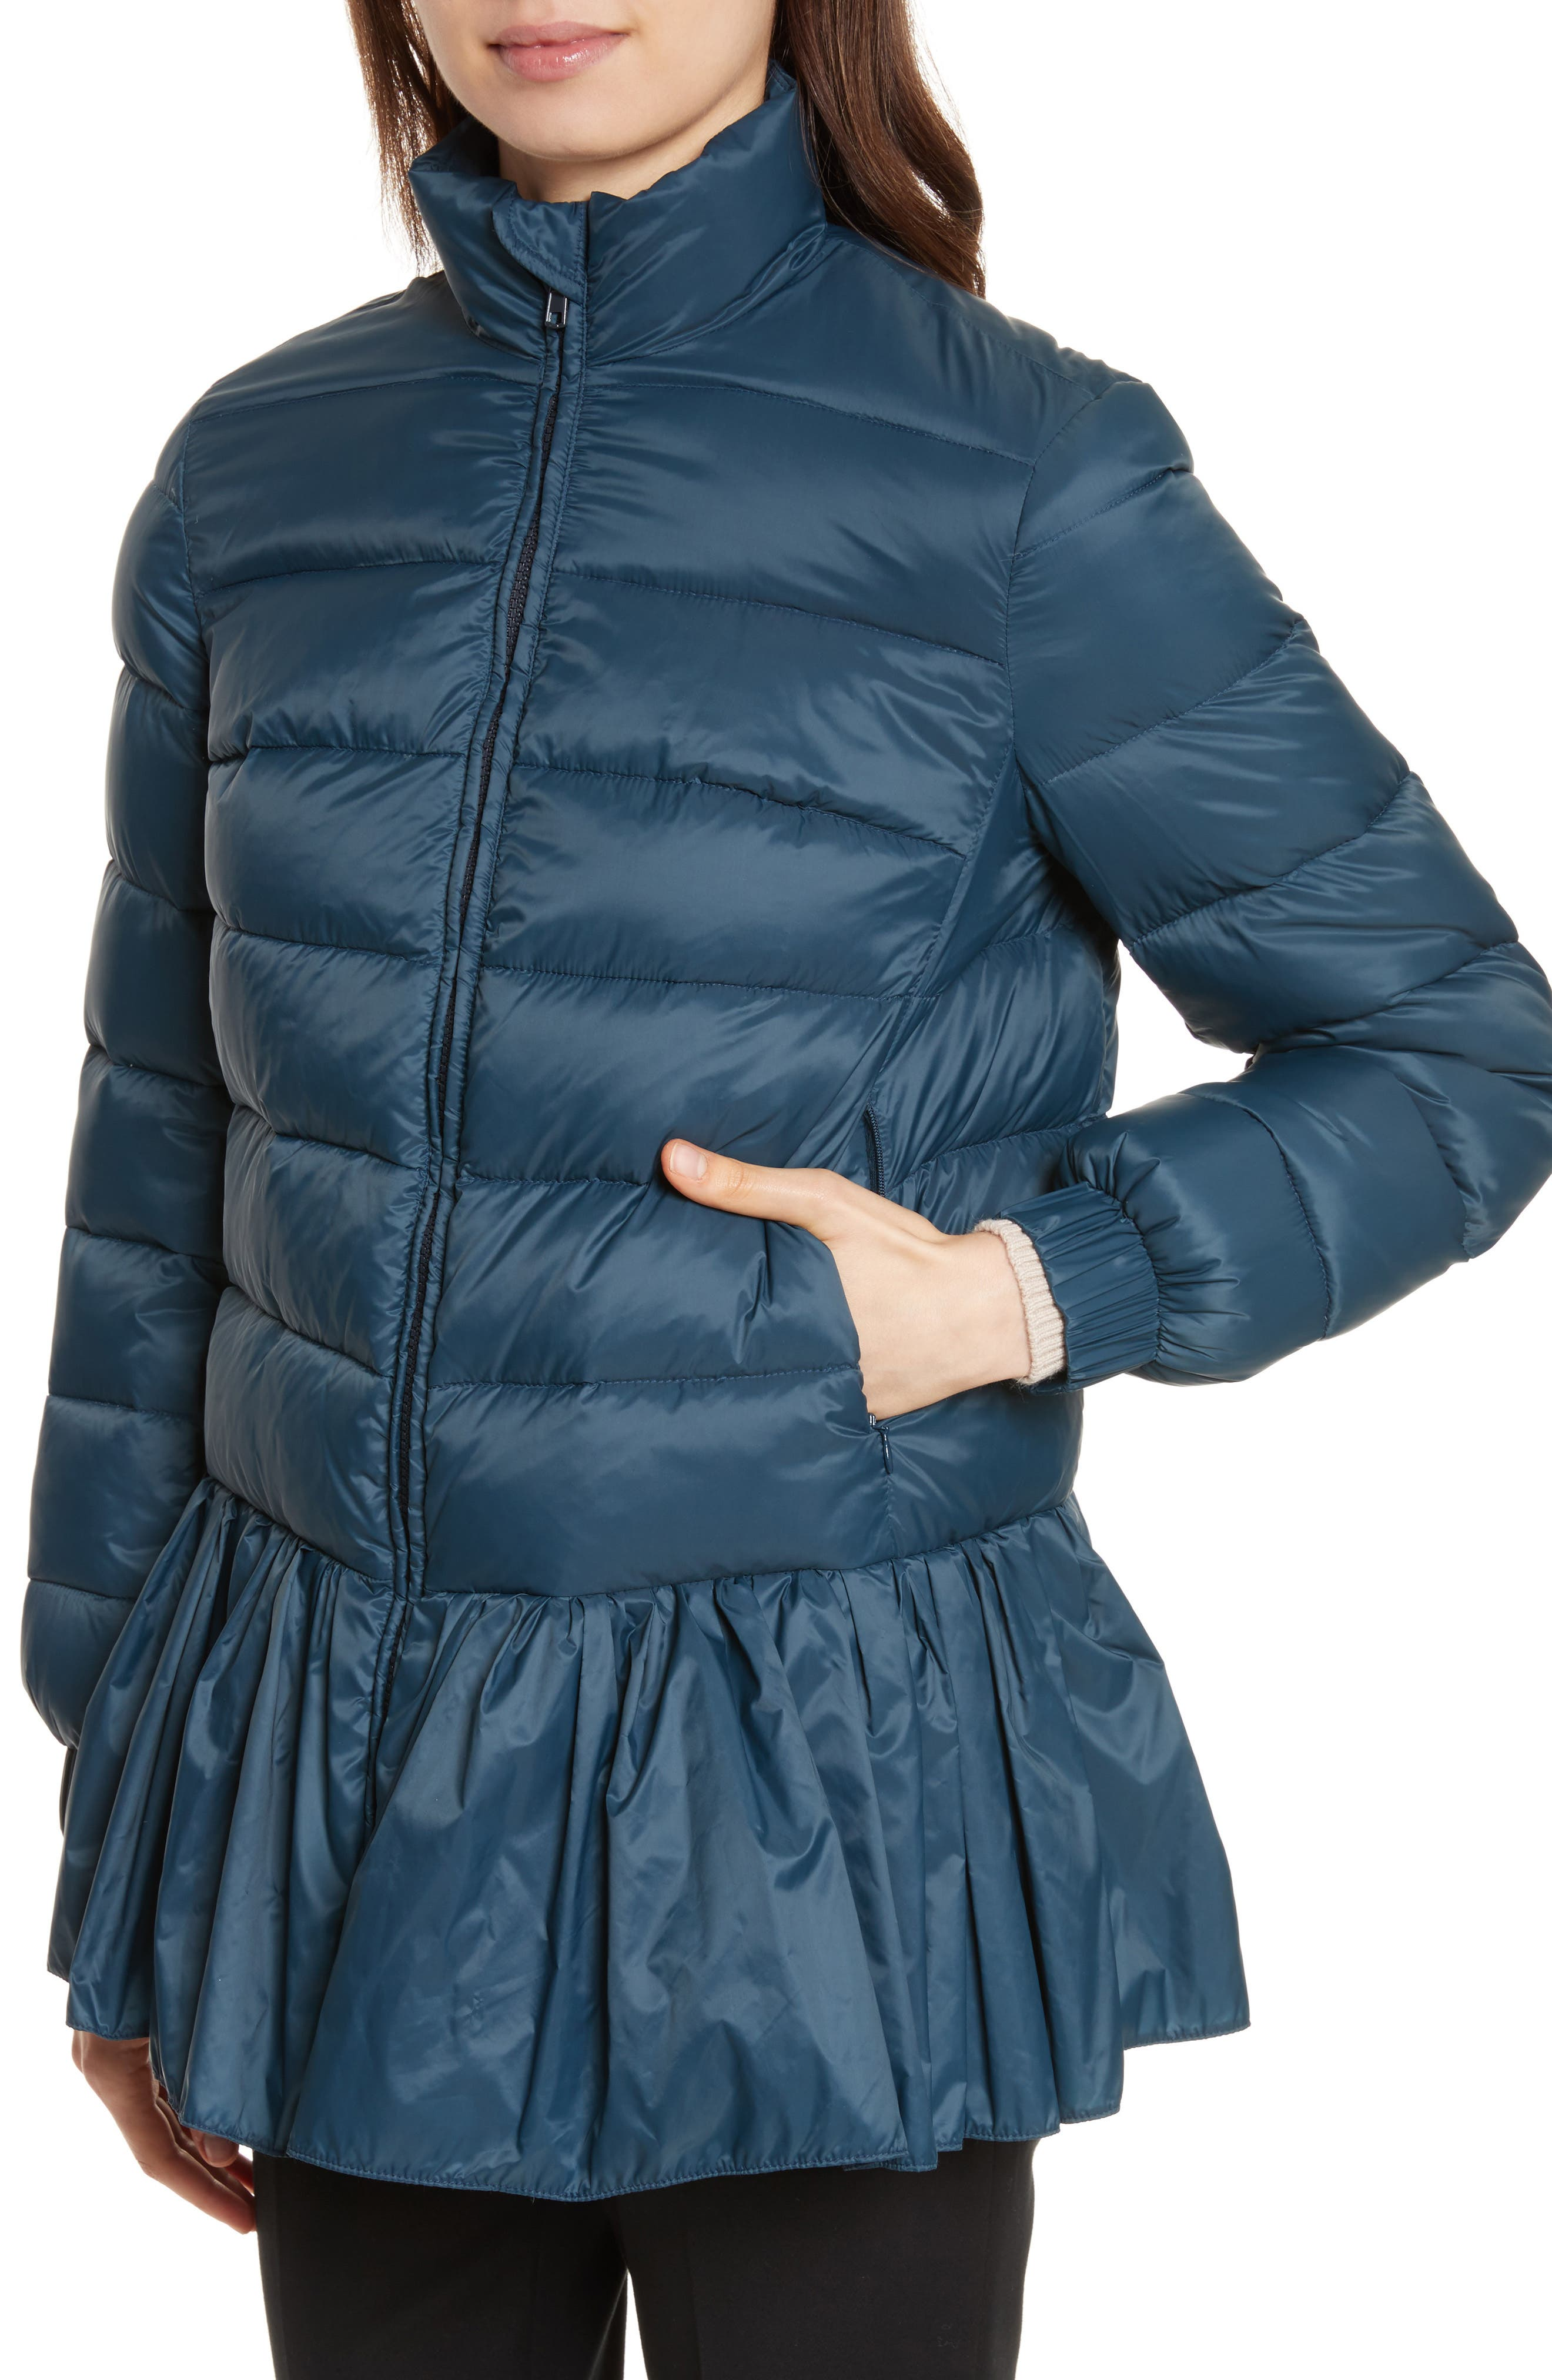 Quilted Peplum Jacket,                             Alternate thumbnail 4, color,                             484